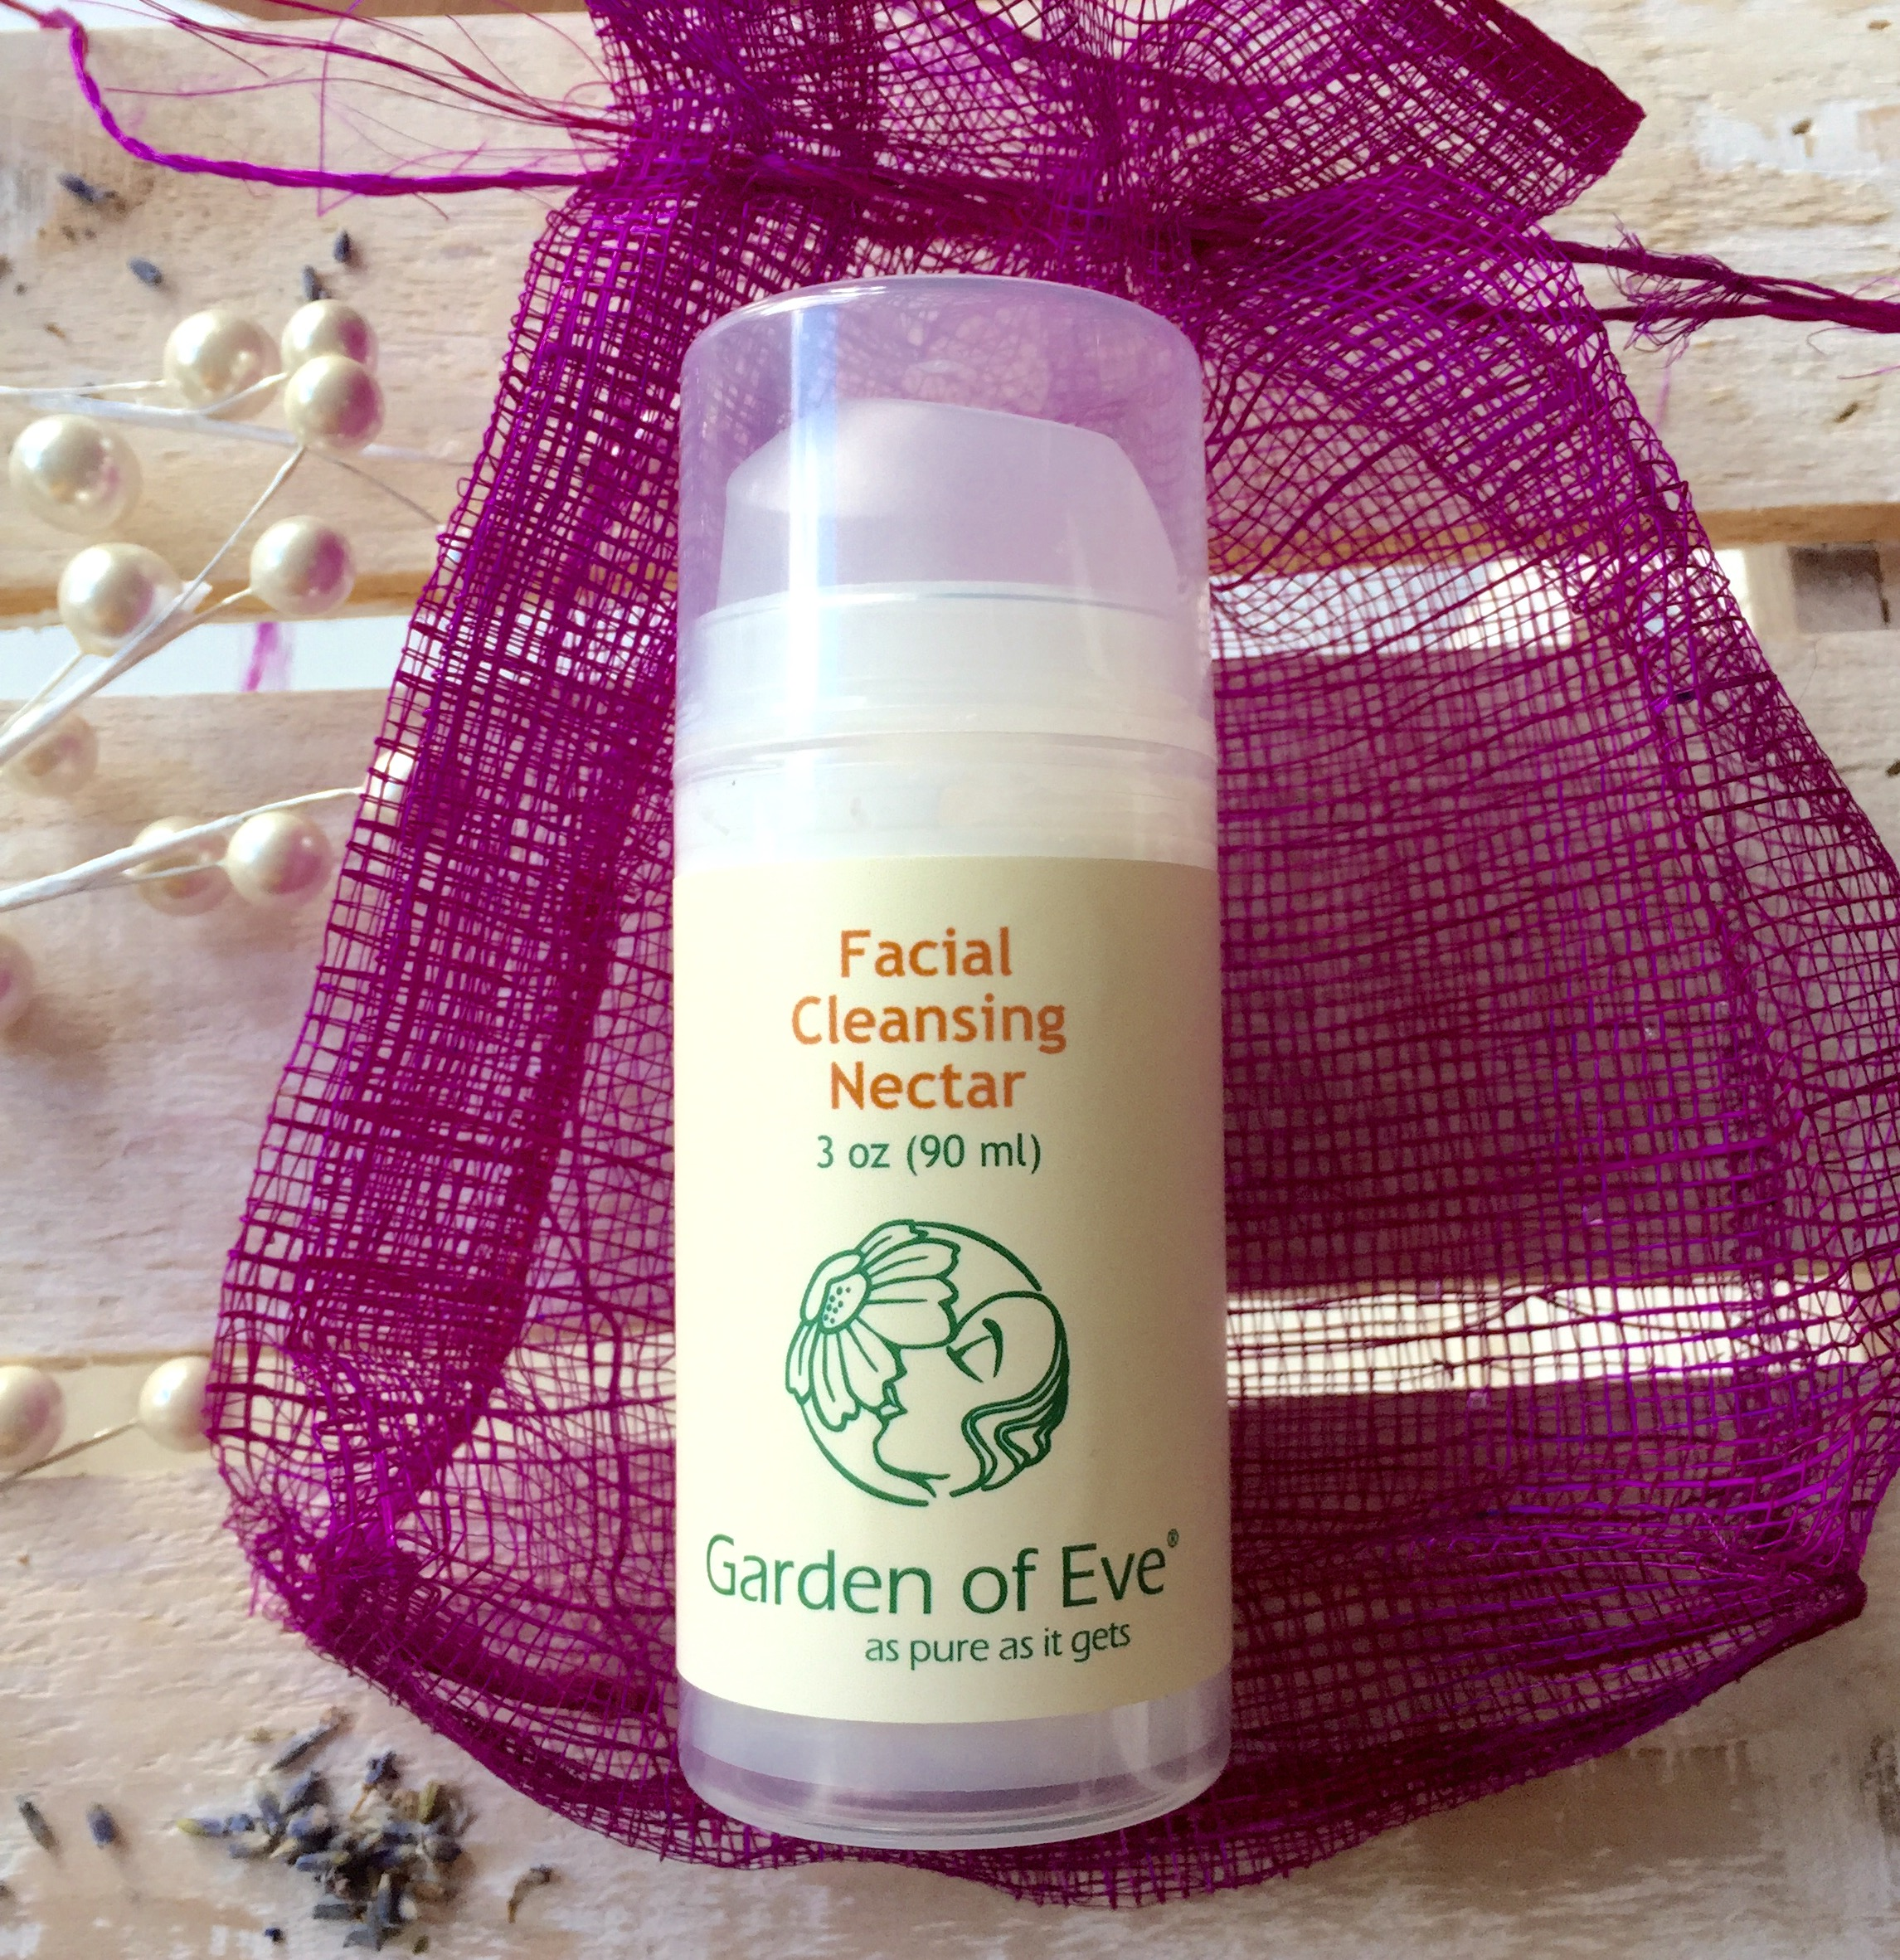 Of eve skin care facial cleansing nectar remarkable, the